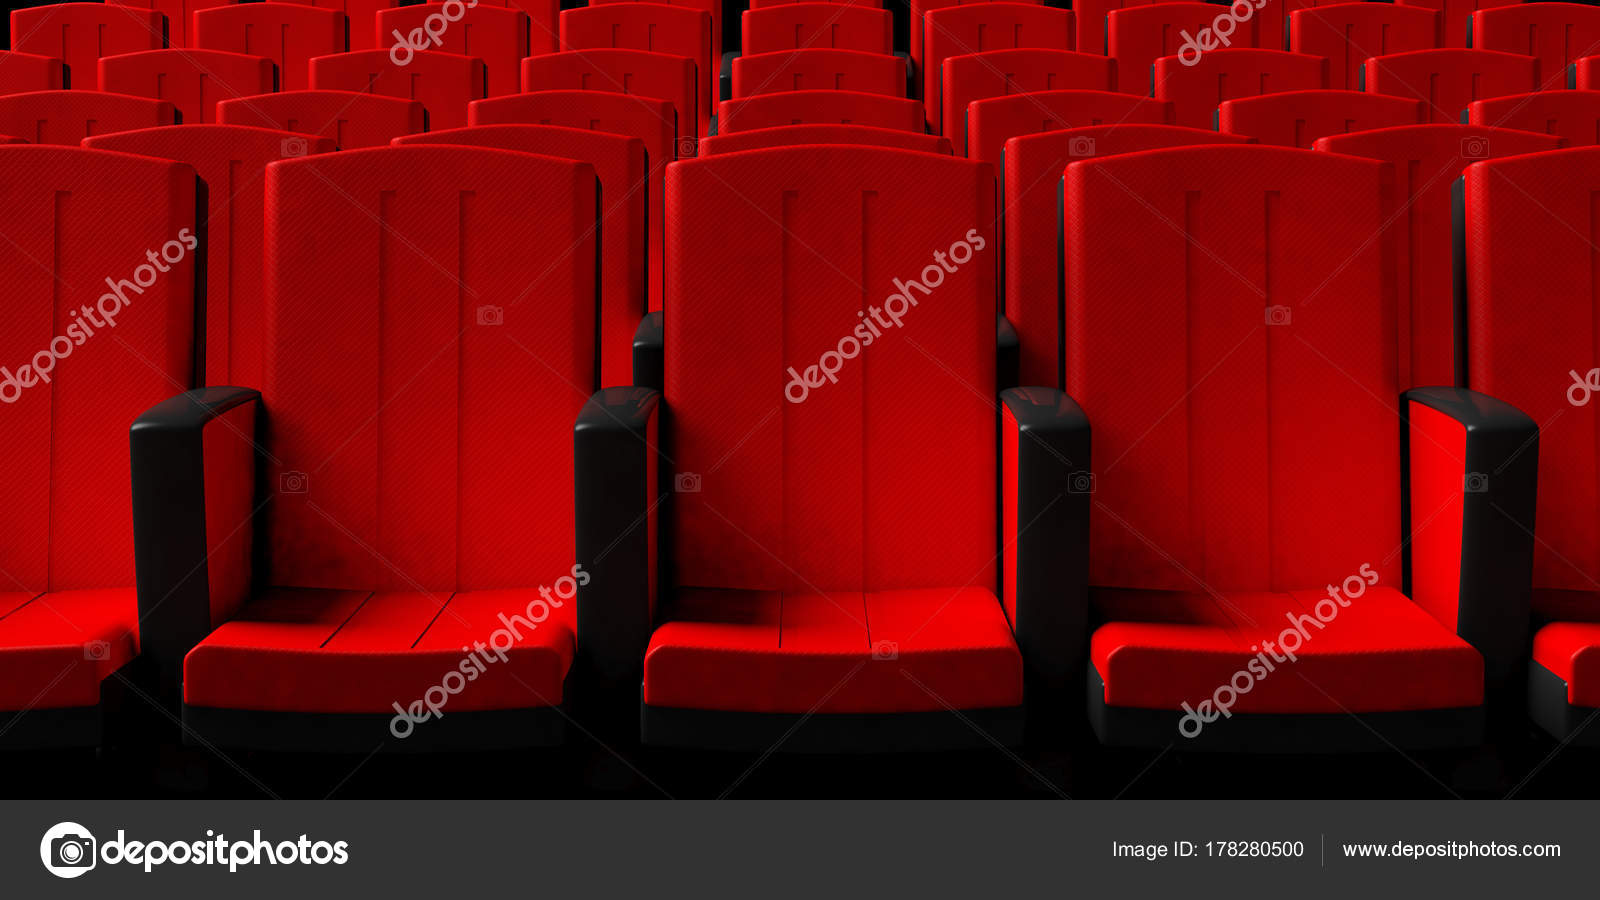 Cinema Chairs Background Front View 3d Illustration Stock Photo C Gioiak2 178280500